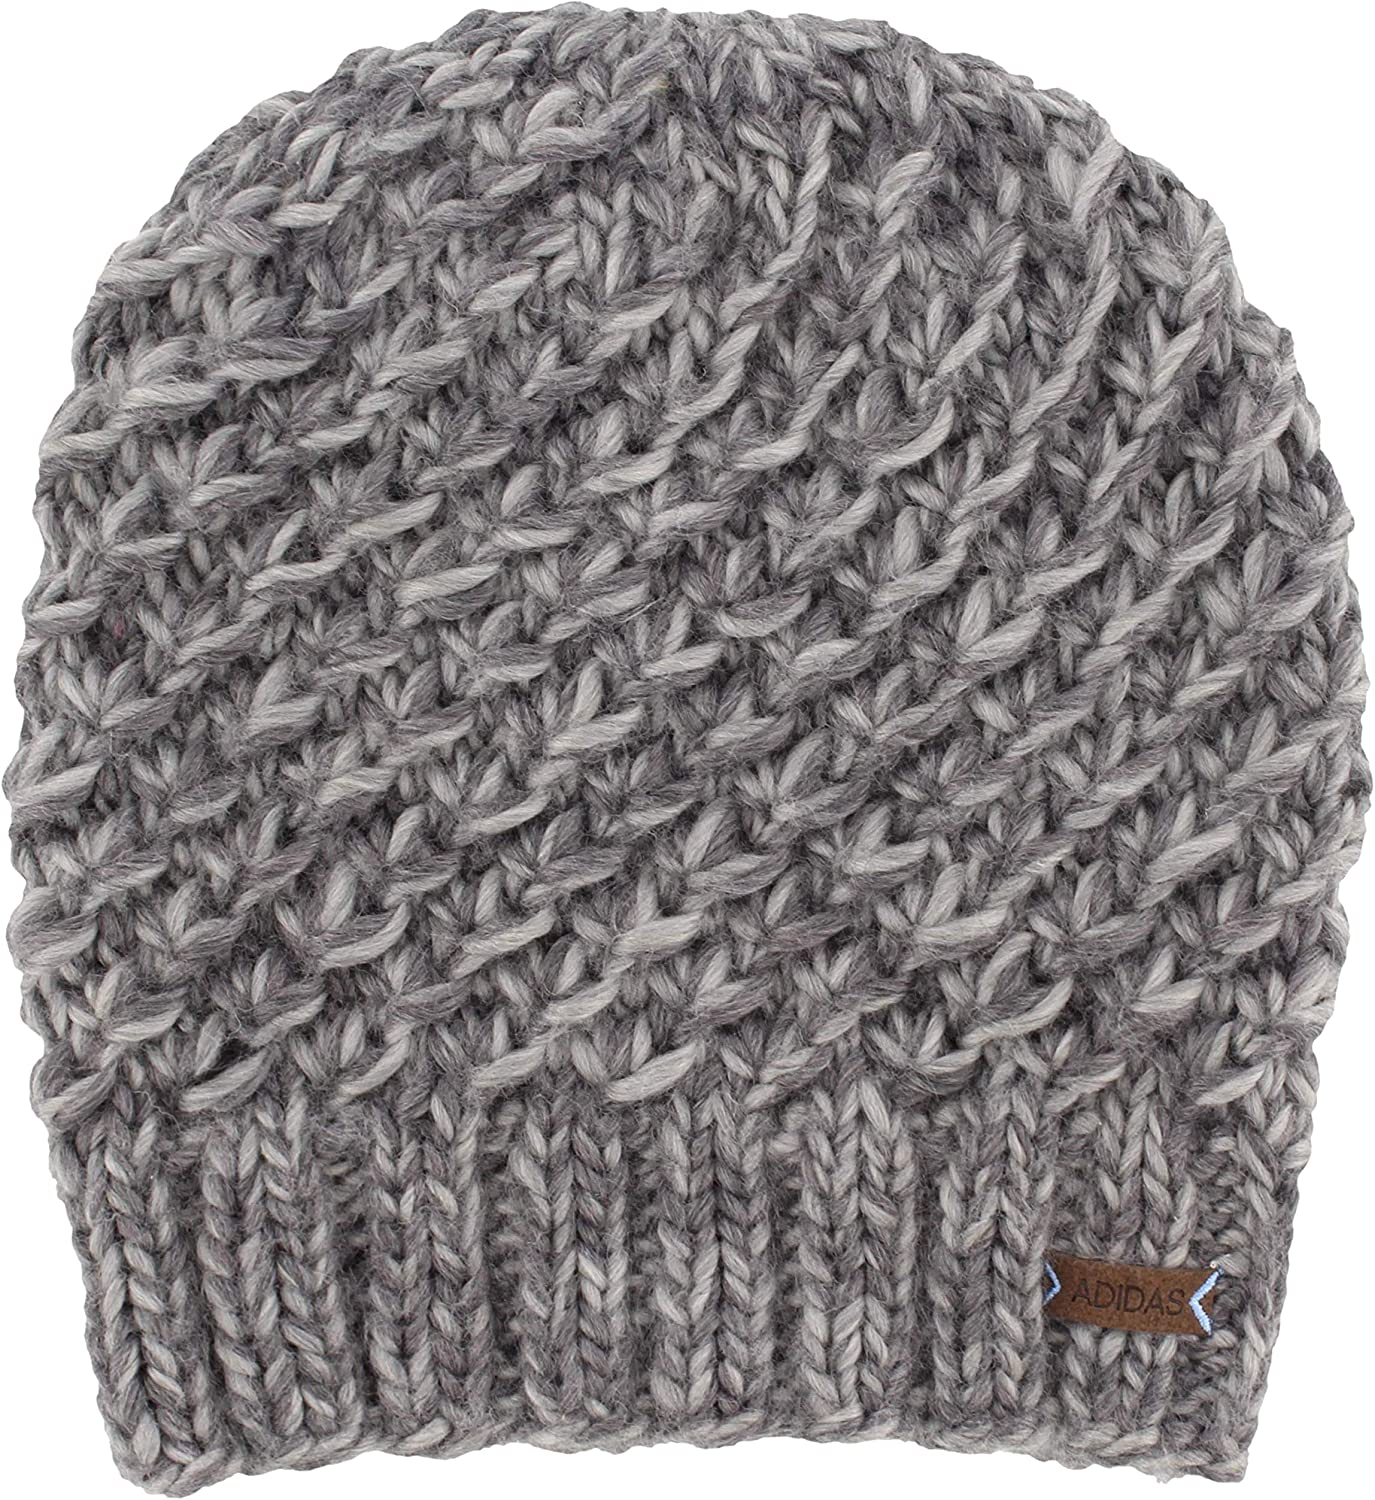 adidas Women's Whittier Beanie, Deepest Space/Grey Marl, ONE SIZE : Clothing